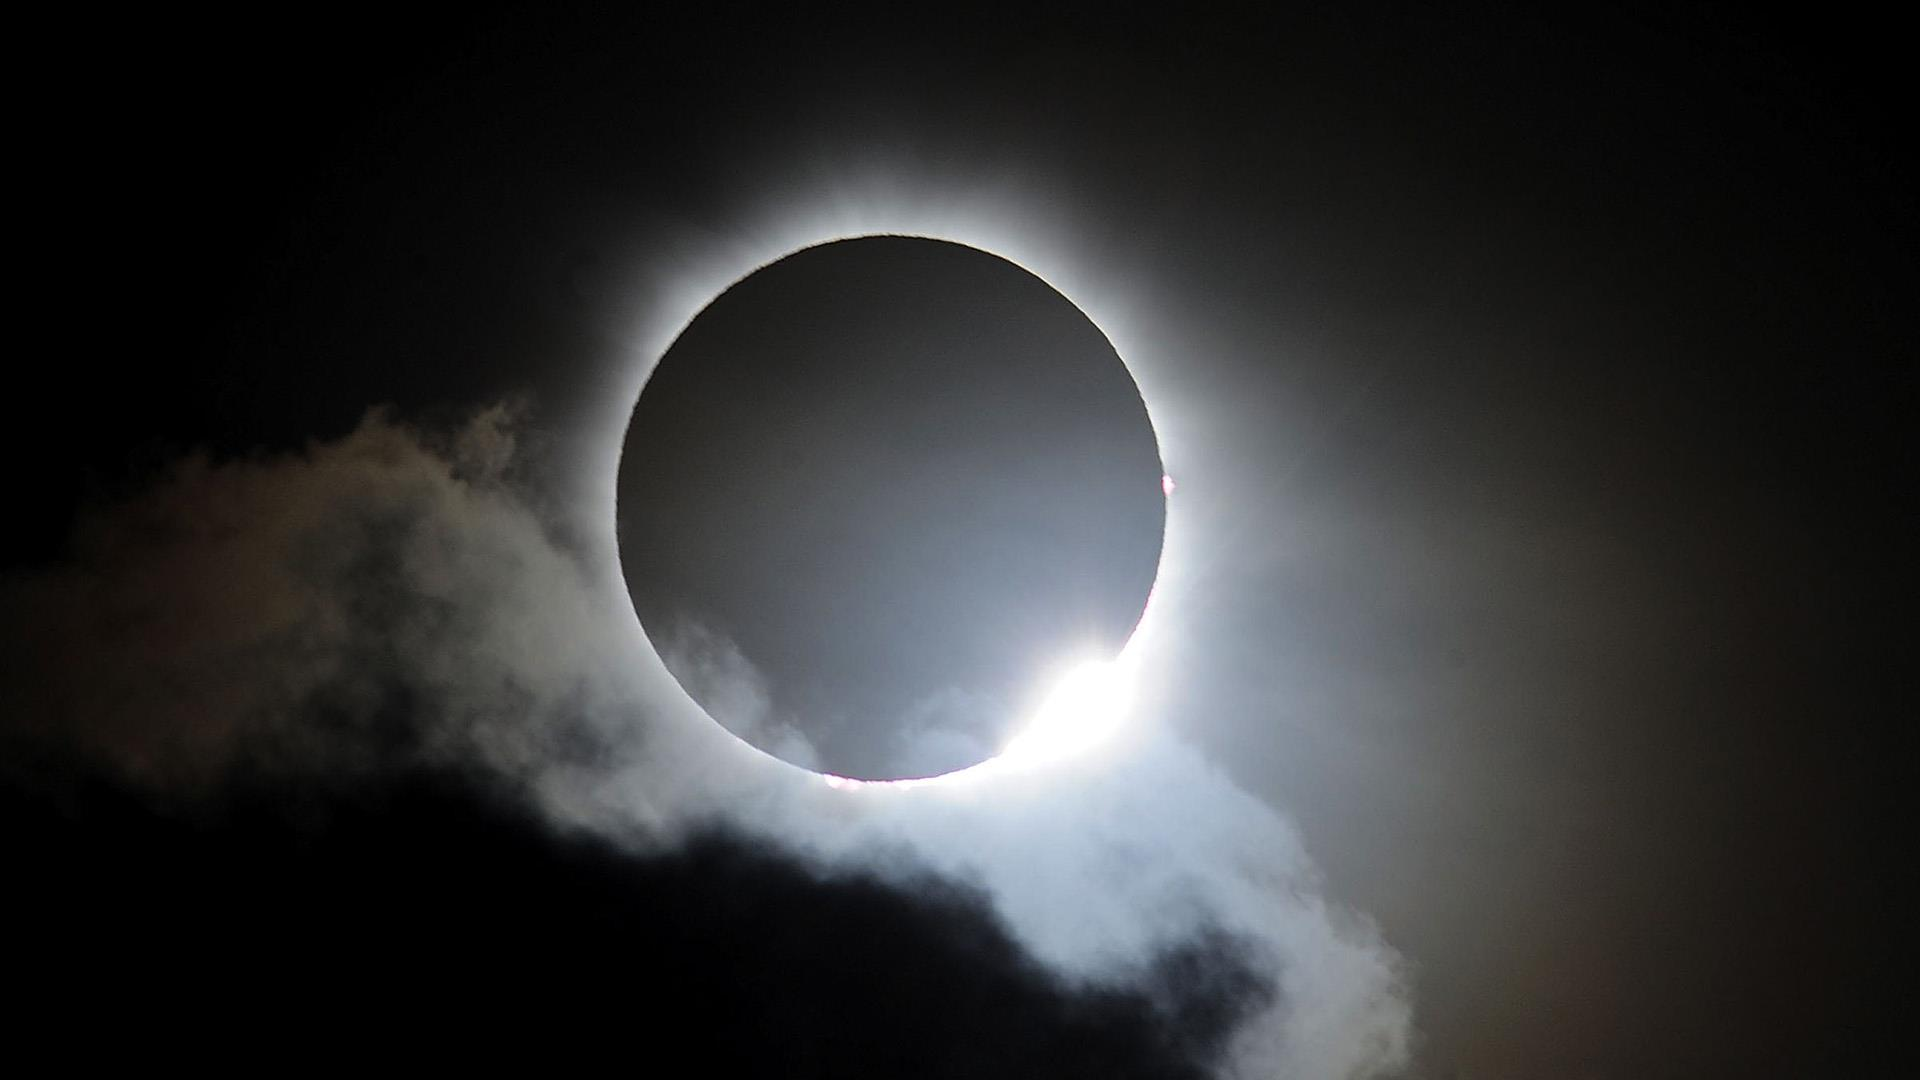 I remember the eclipse of 79....do you?